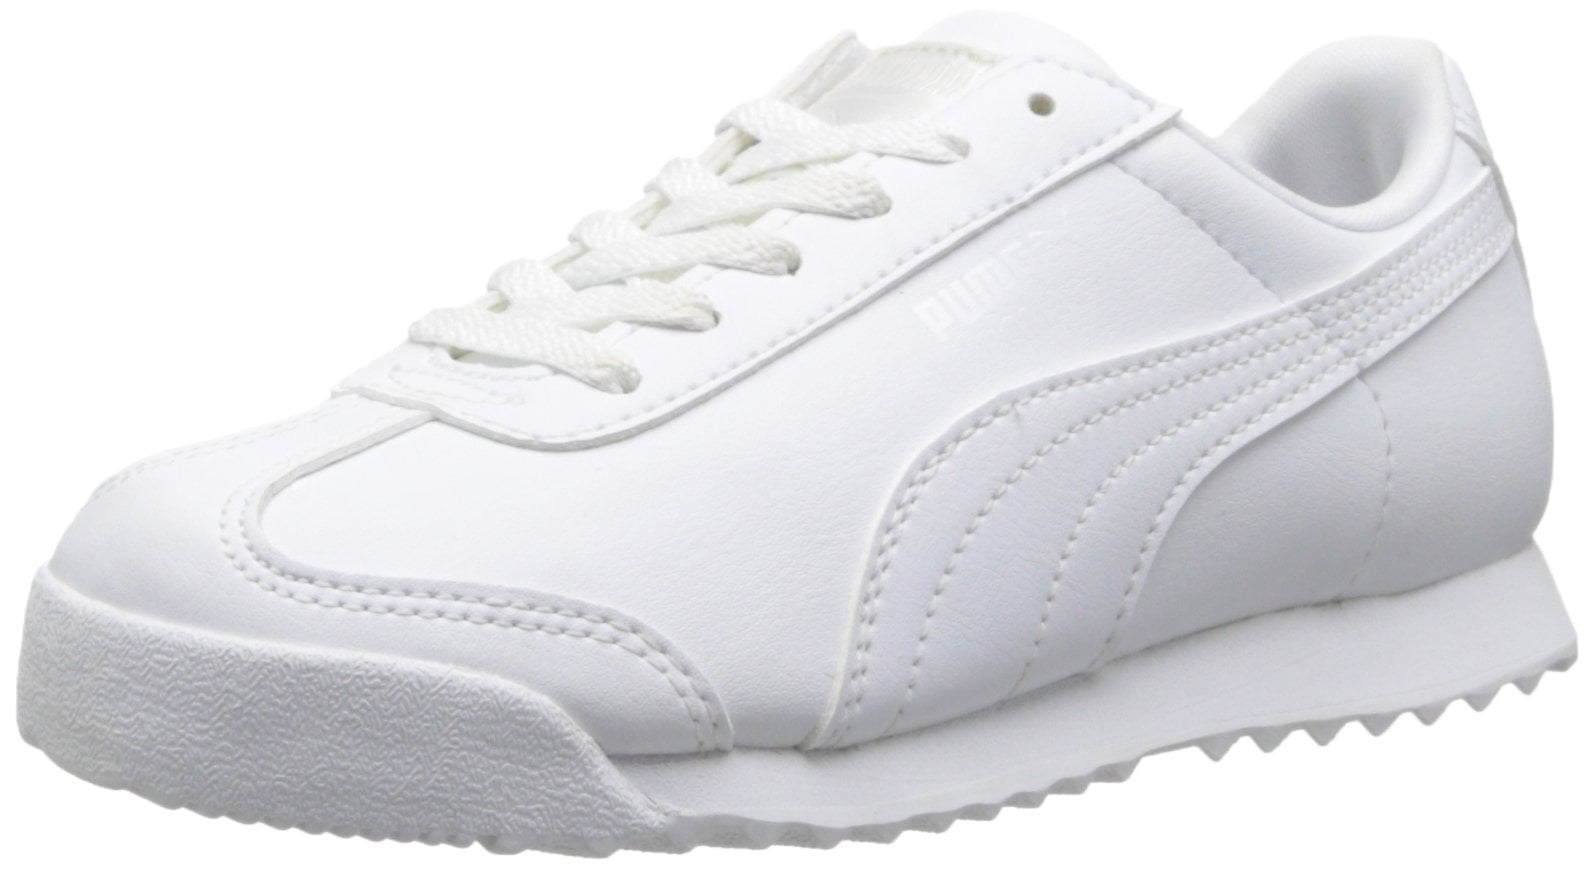 Puma Roma Basic White 354260 14 Baby Toddler Shoes